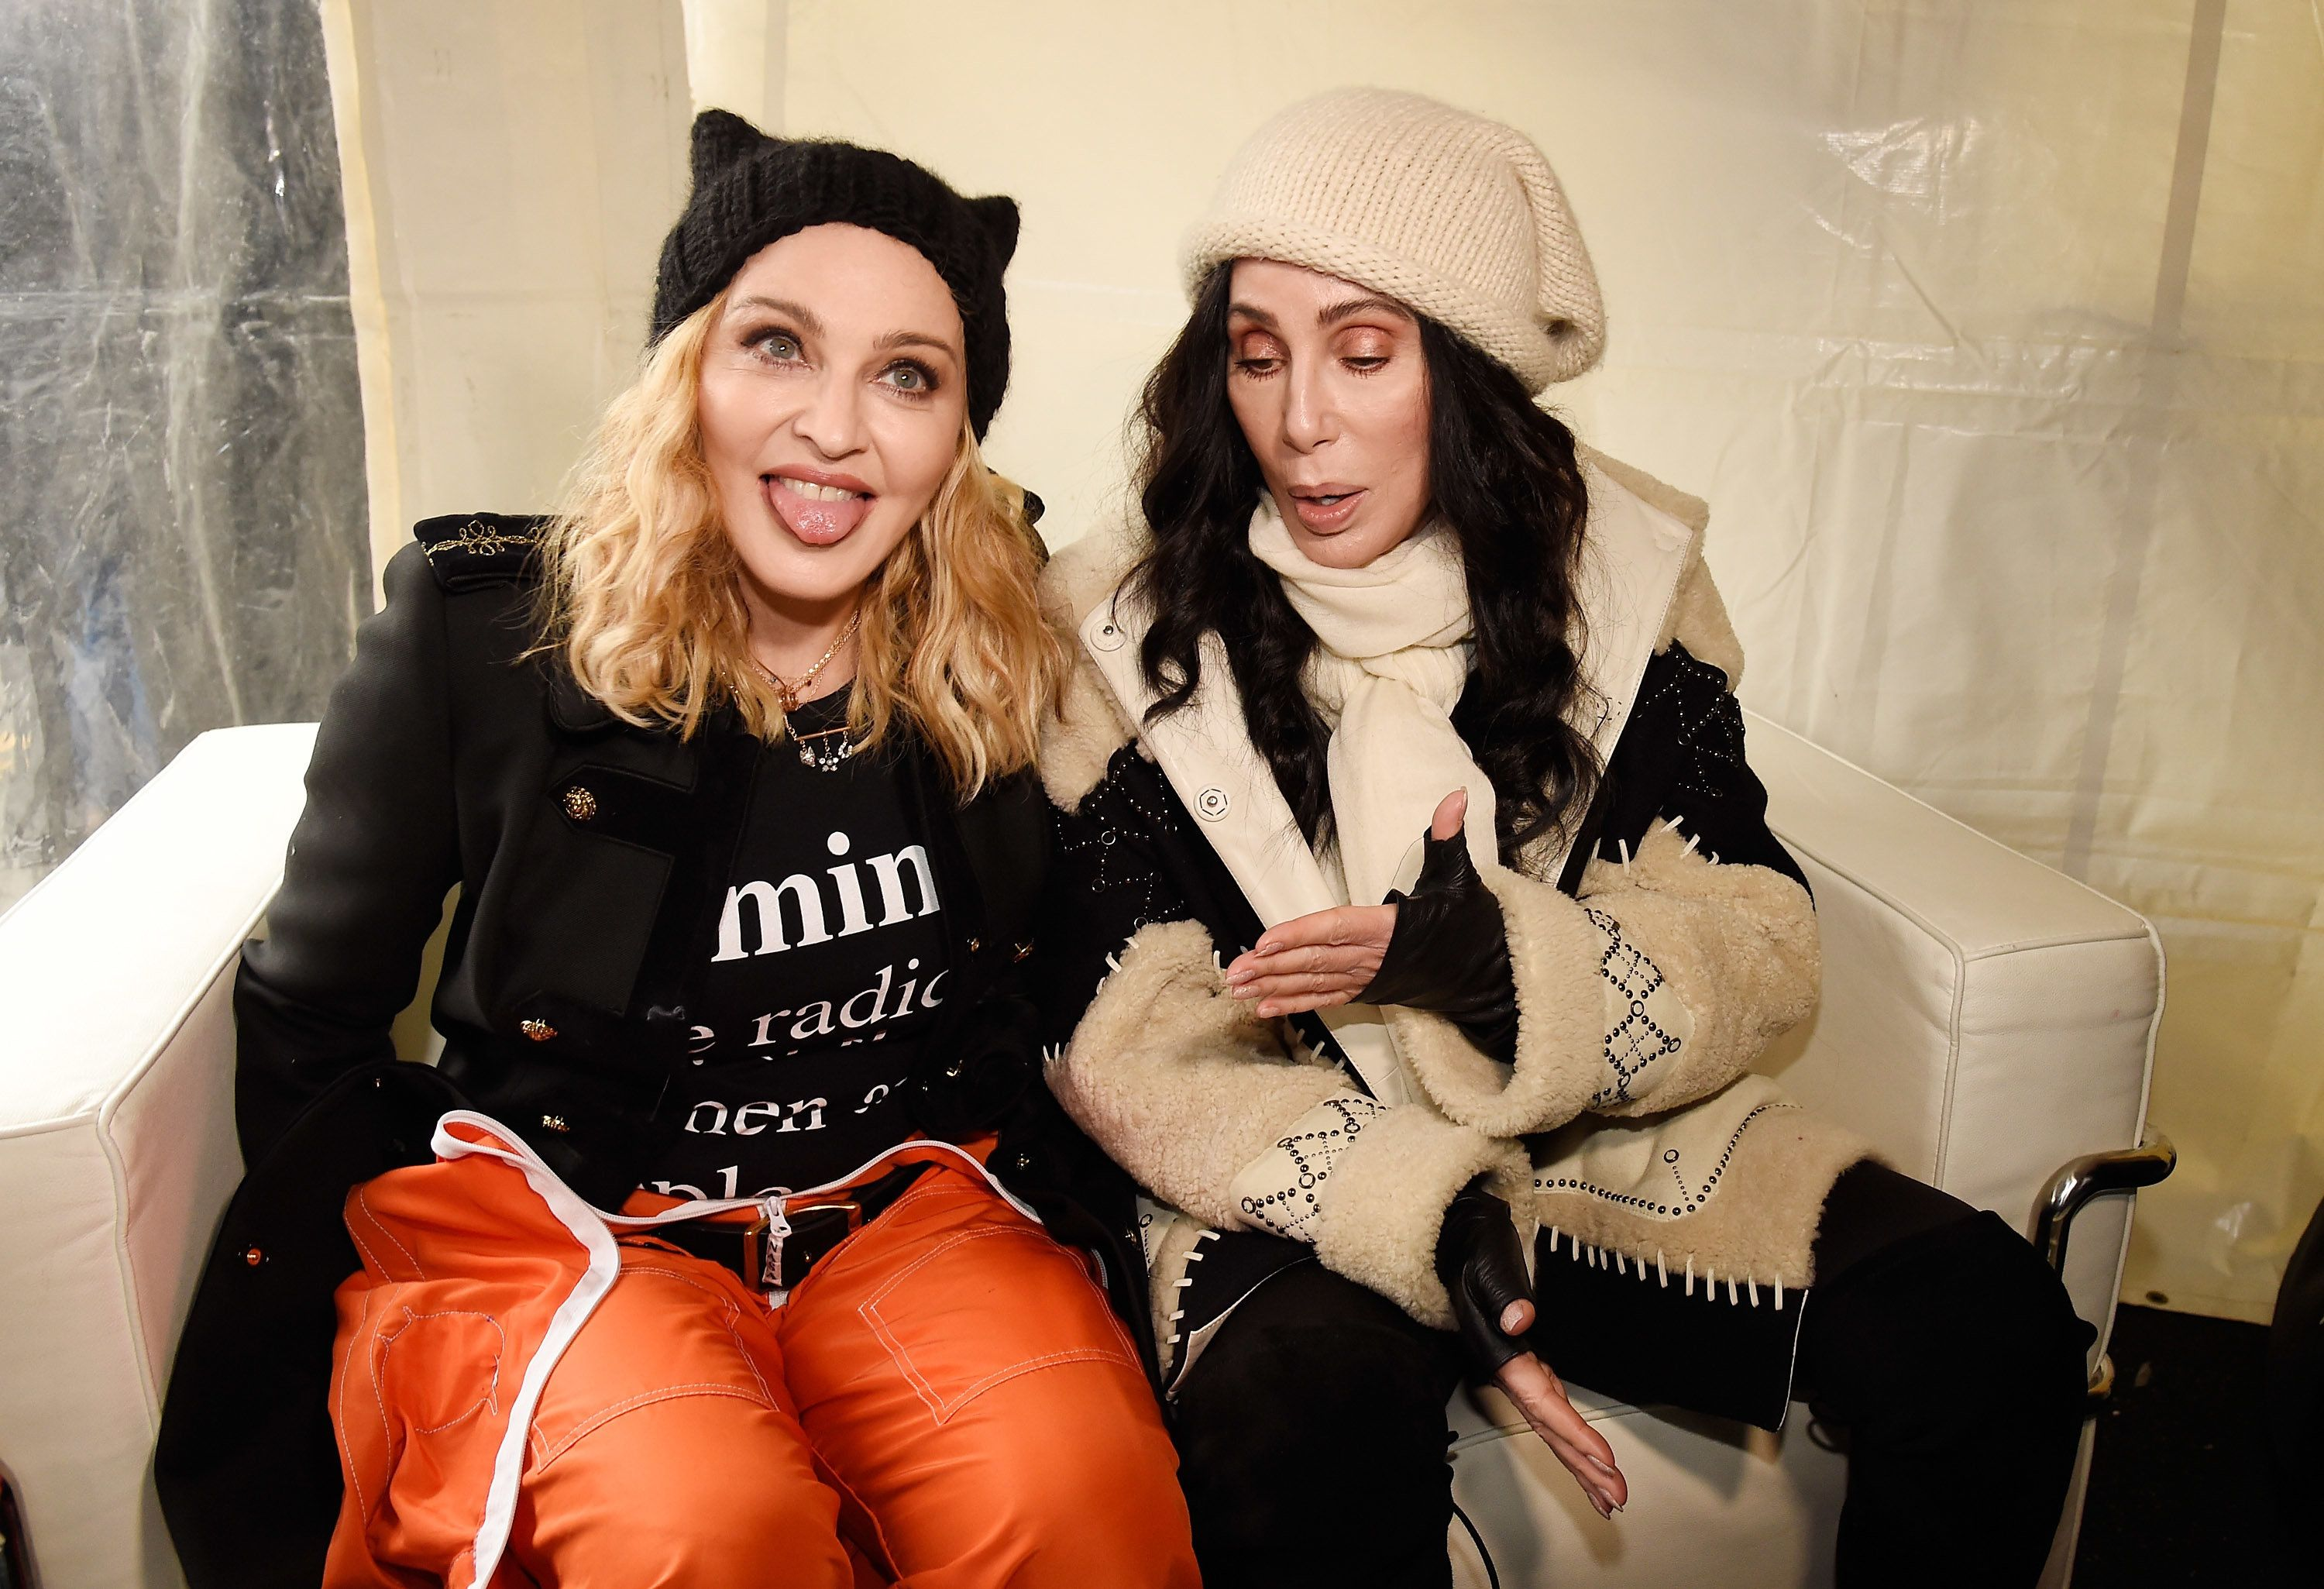 WASHINGTON, DC - JANUARY 21:  Madonna (L) and Cher attend the rally at the Women's March on Washington on January 21, 2017 in Washington, DC.  (Photo by Kevin Mazur/WireImage)